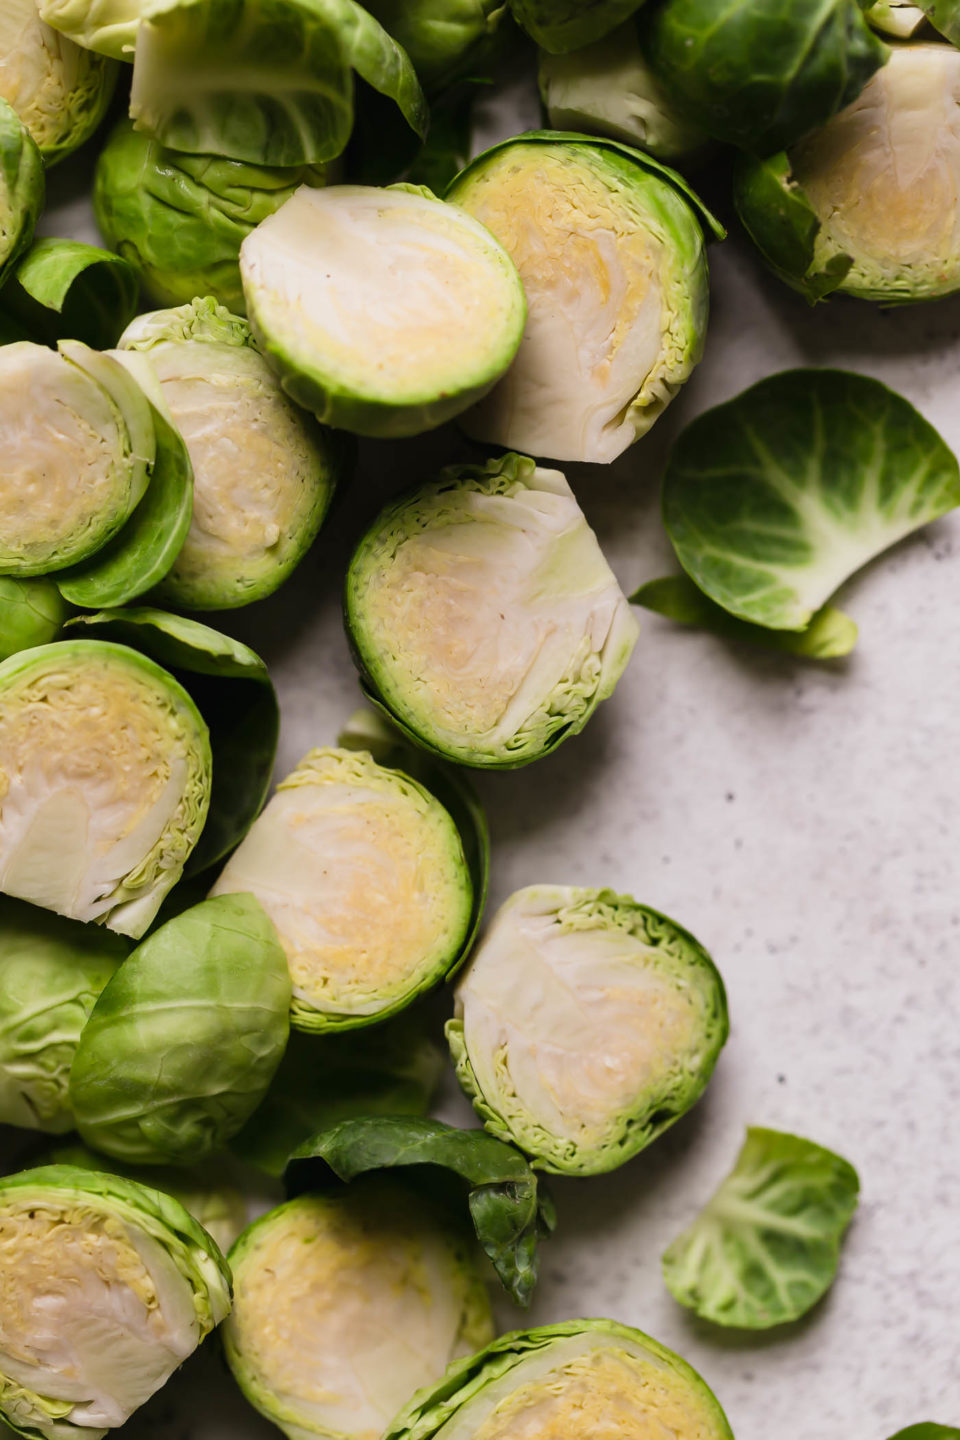 Trimmed brussels sprouts arranged on a white backdrop. The brussels sprouts are halved lengthwise.